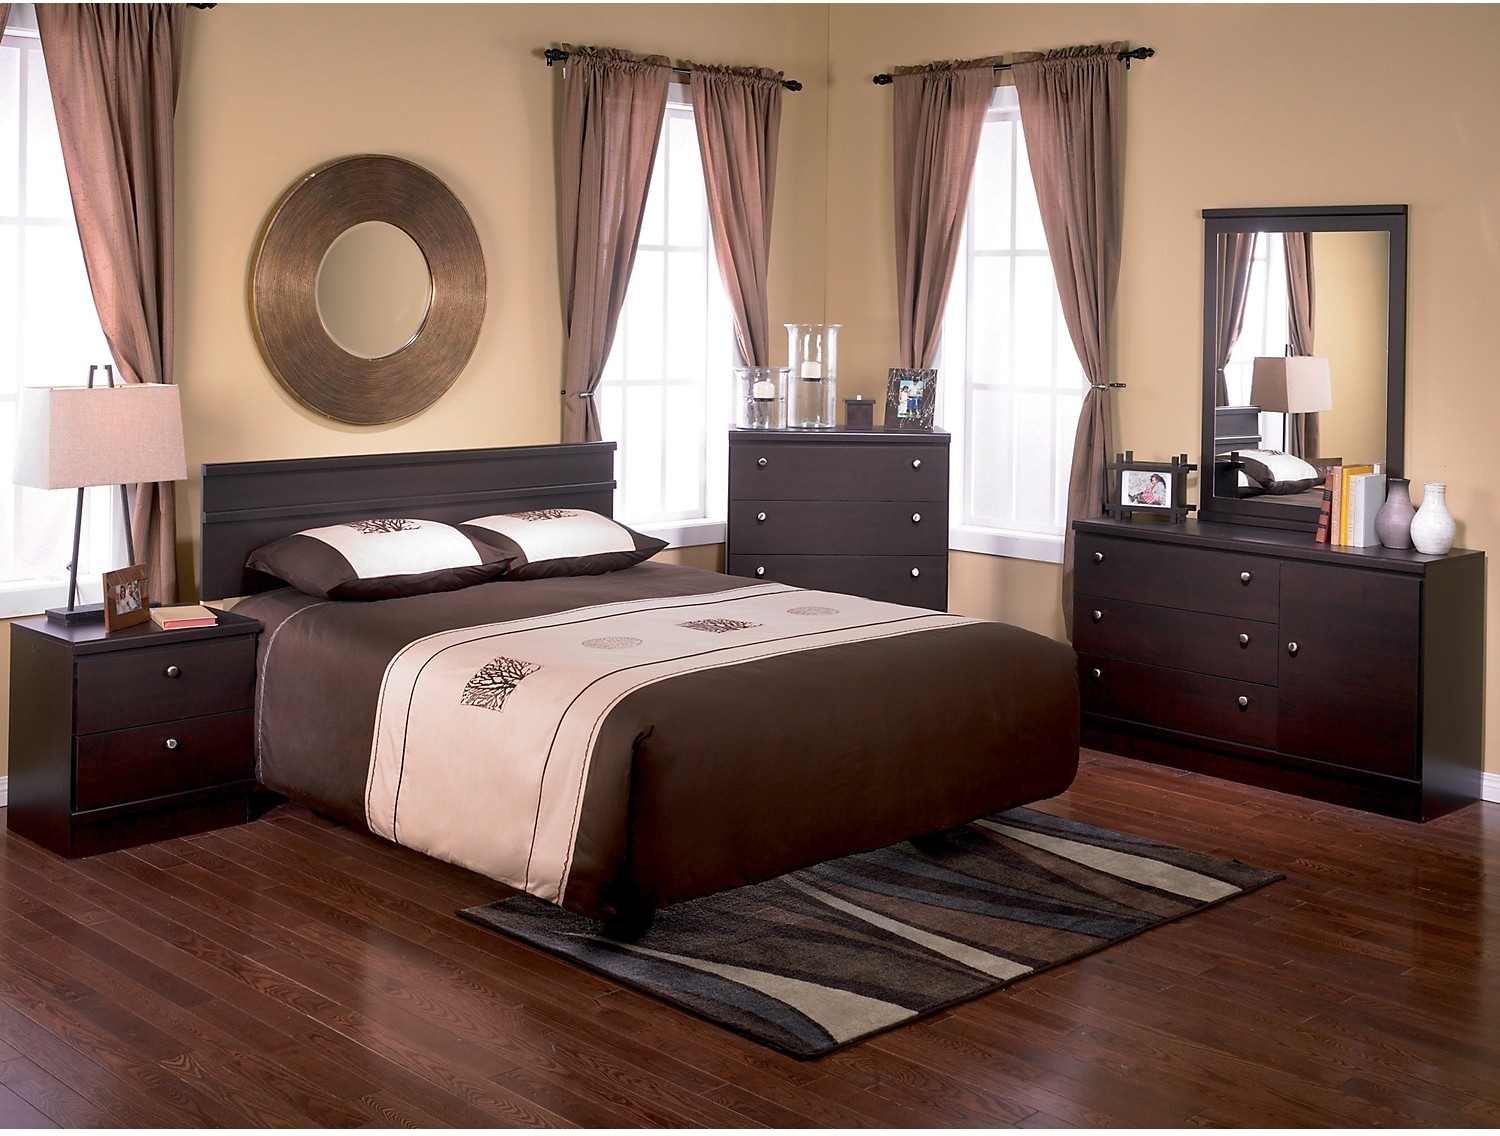 Bedroom Furniture - Loft 4 Piece Full/Queen Bedroom Package